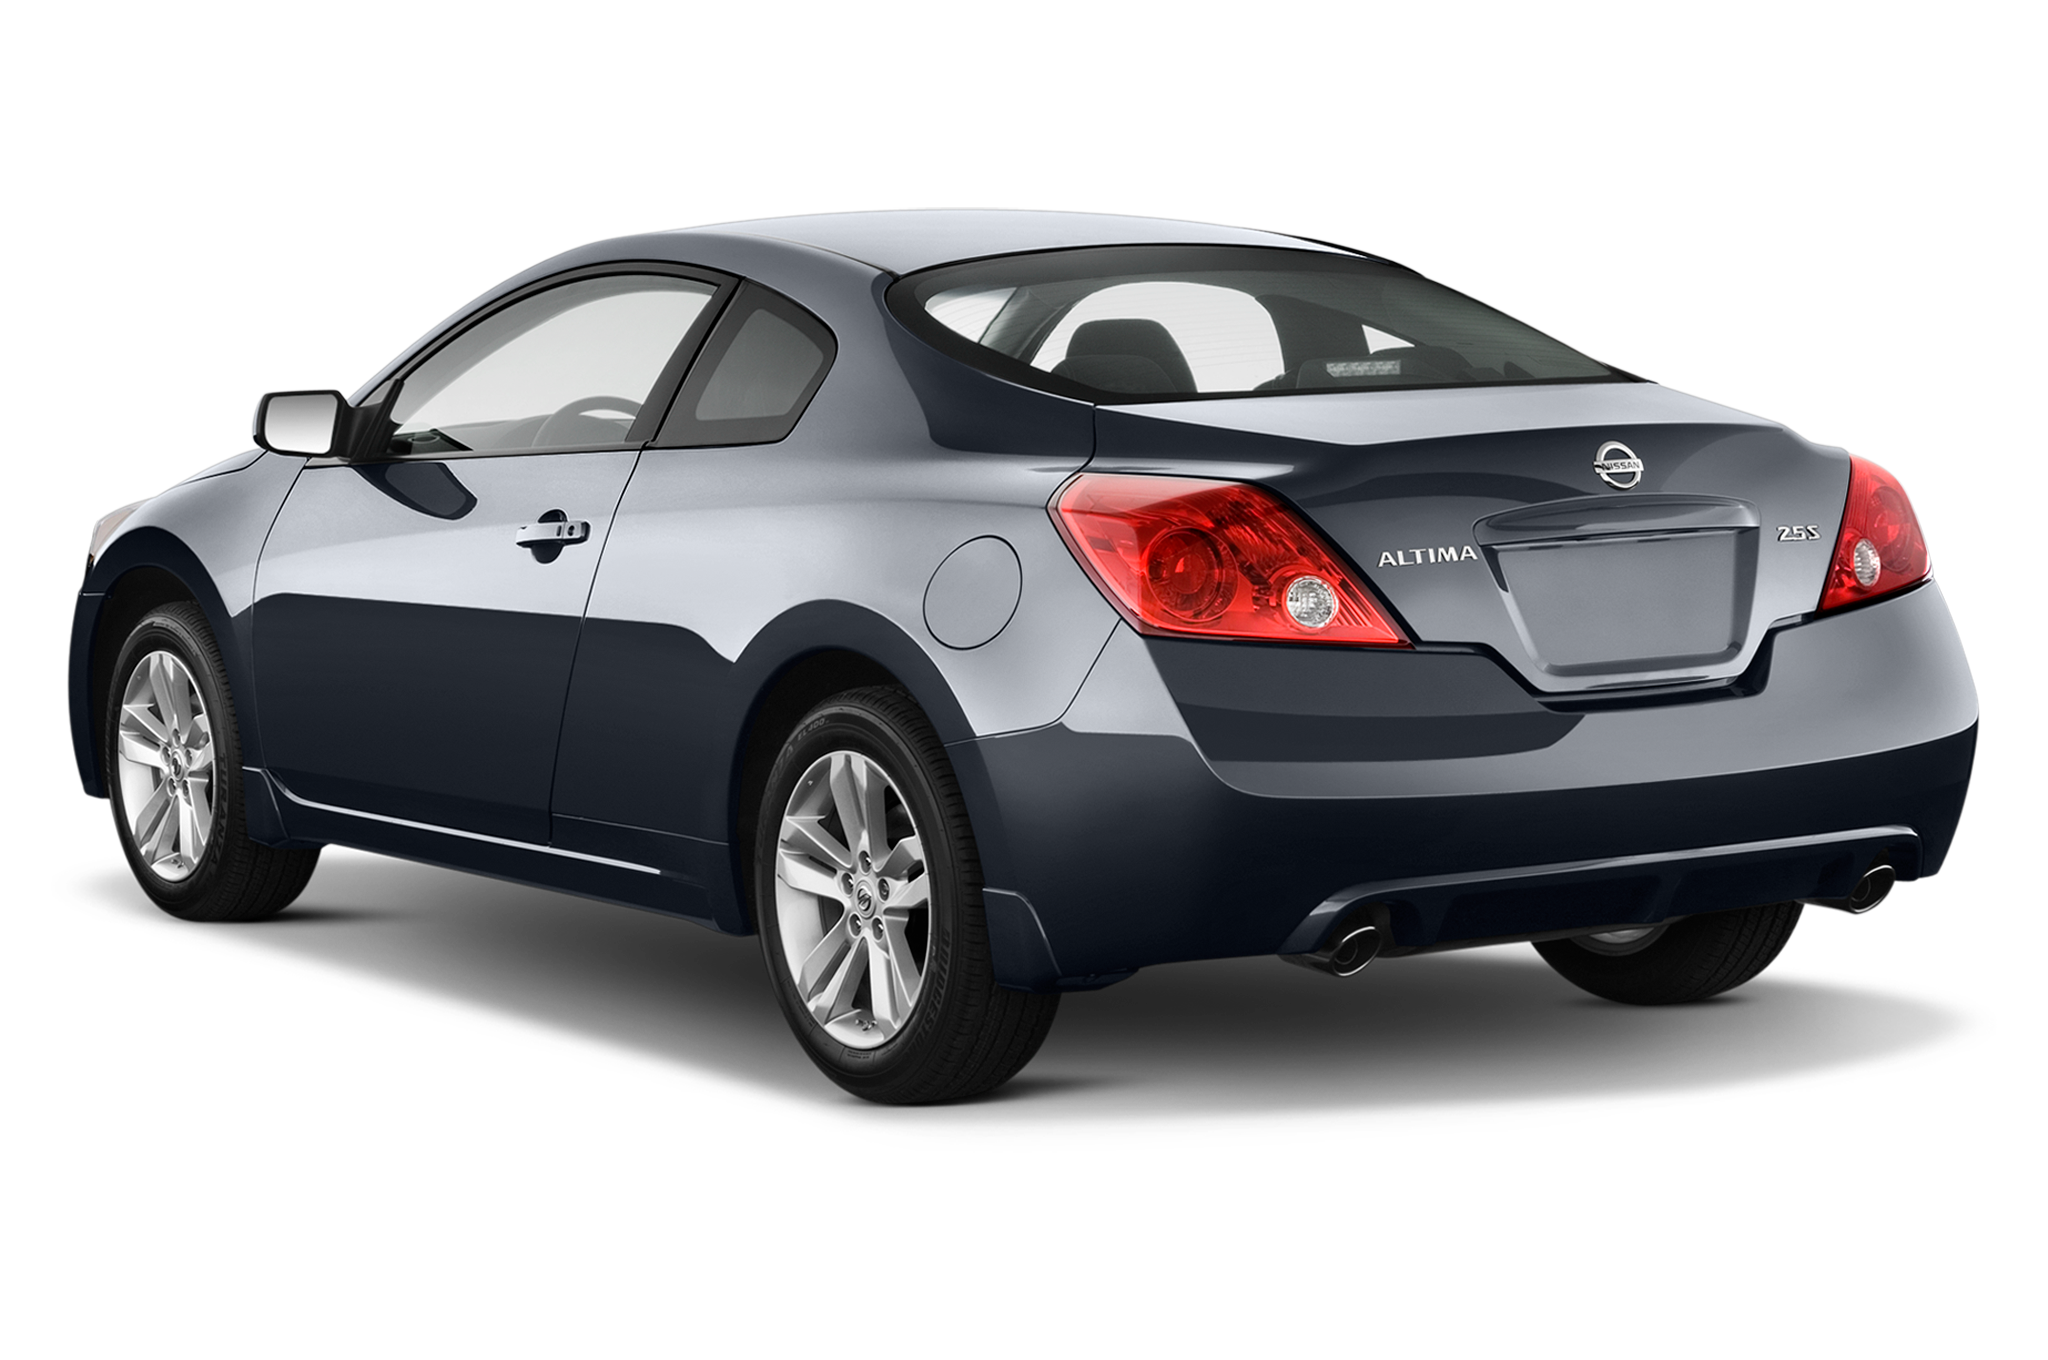 2010 nissan altima 3 5 sr nissan midsize sedan review automobile magazine. Black Bedroom Furniture Sets. Home Design Ideas